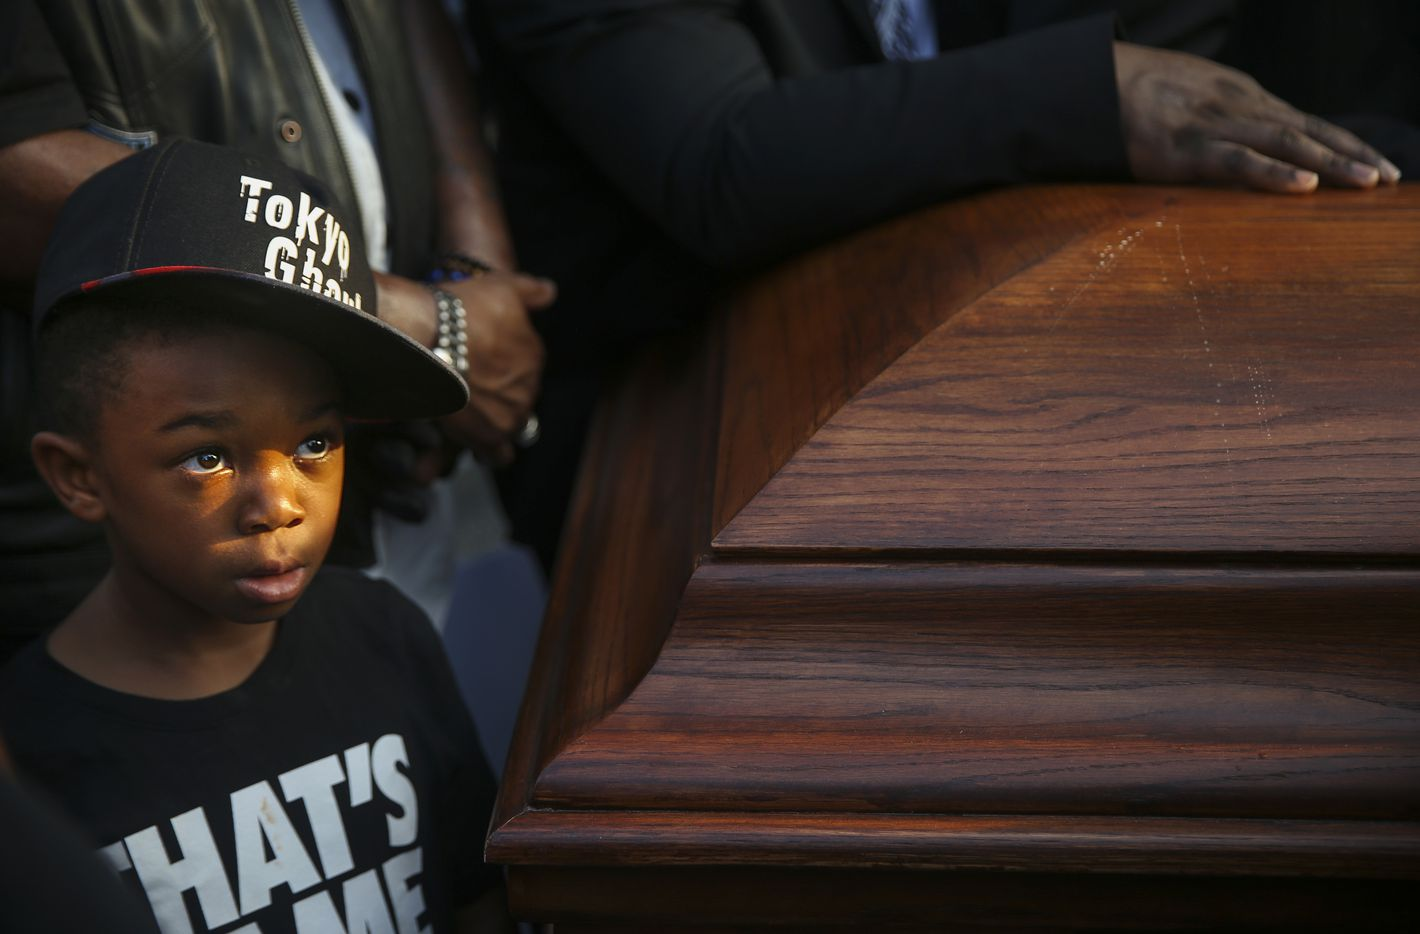 King Solomon Grayson, 6, of Duncanville, Texas, stands near two empty coffins symbolizing the double-murder of black victims' bodies and their names during a protest prior to the start of the Dallas Cowboys' game against the New York Giants on Sunday, Sept. 16, 2018 at AT&T Stadium in Arlington, Texas. The demonstration comes after Botham Jean Shem was shot in his home by Dallas police officer Amber Guyger.